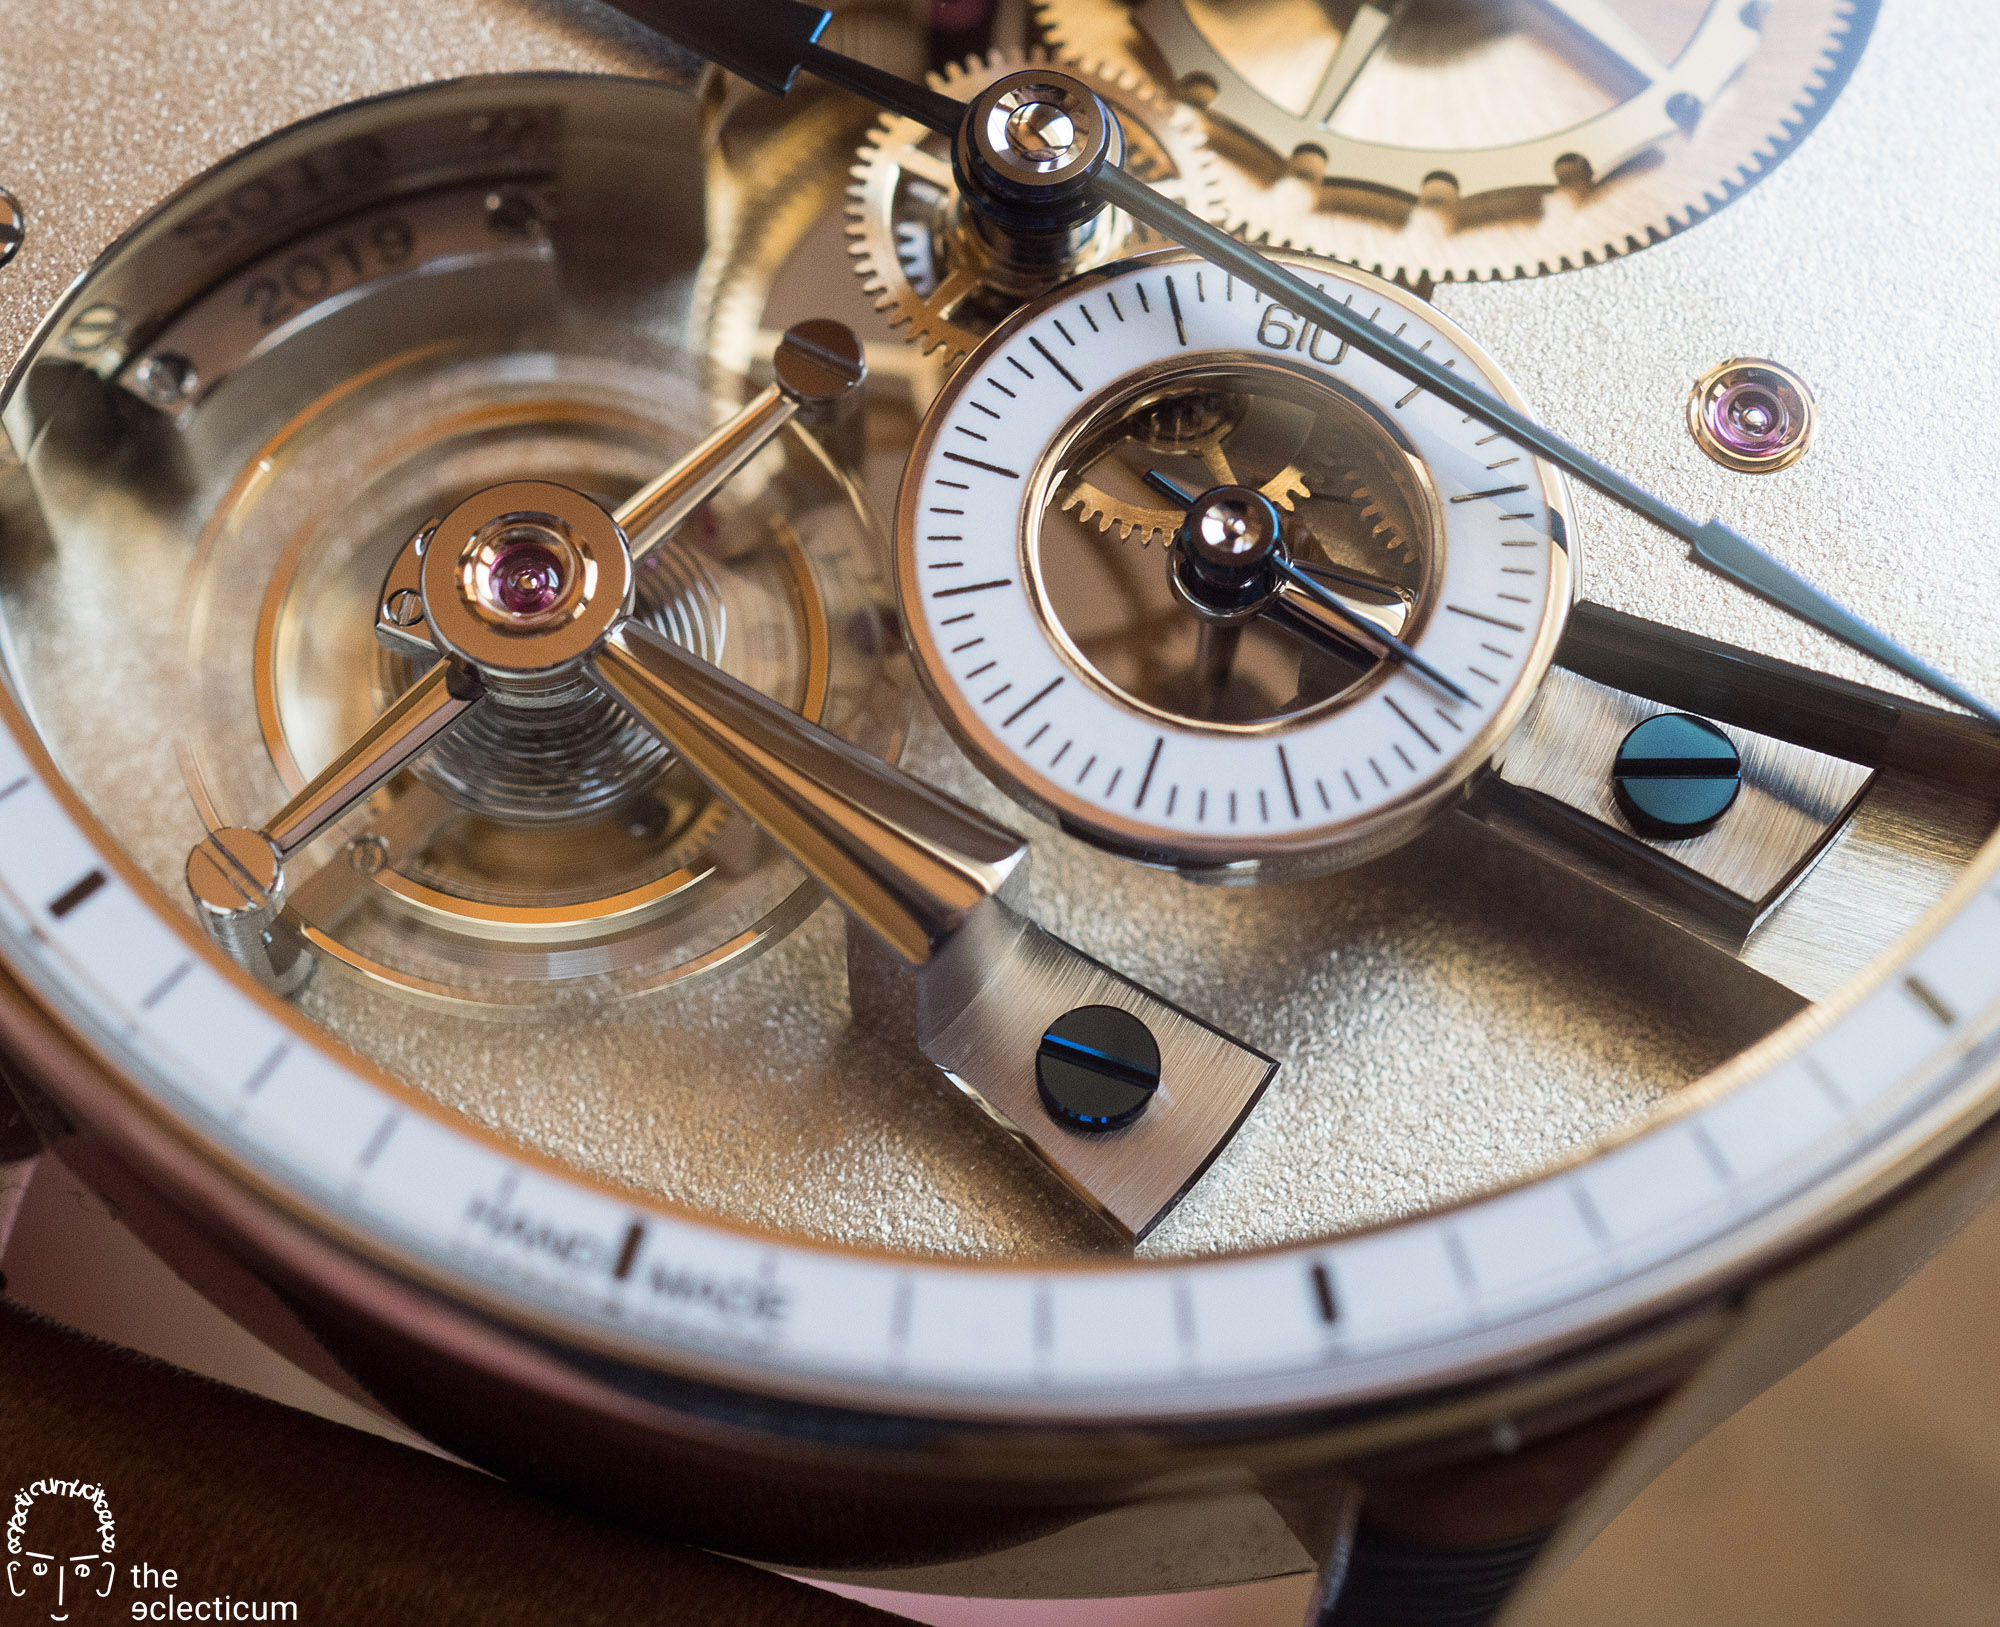 Greubel Forsey Hand Made 1 tourbillon bridge mirror polishing